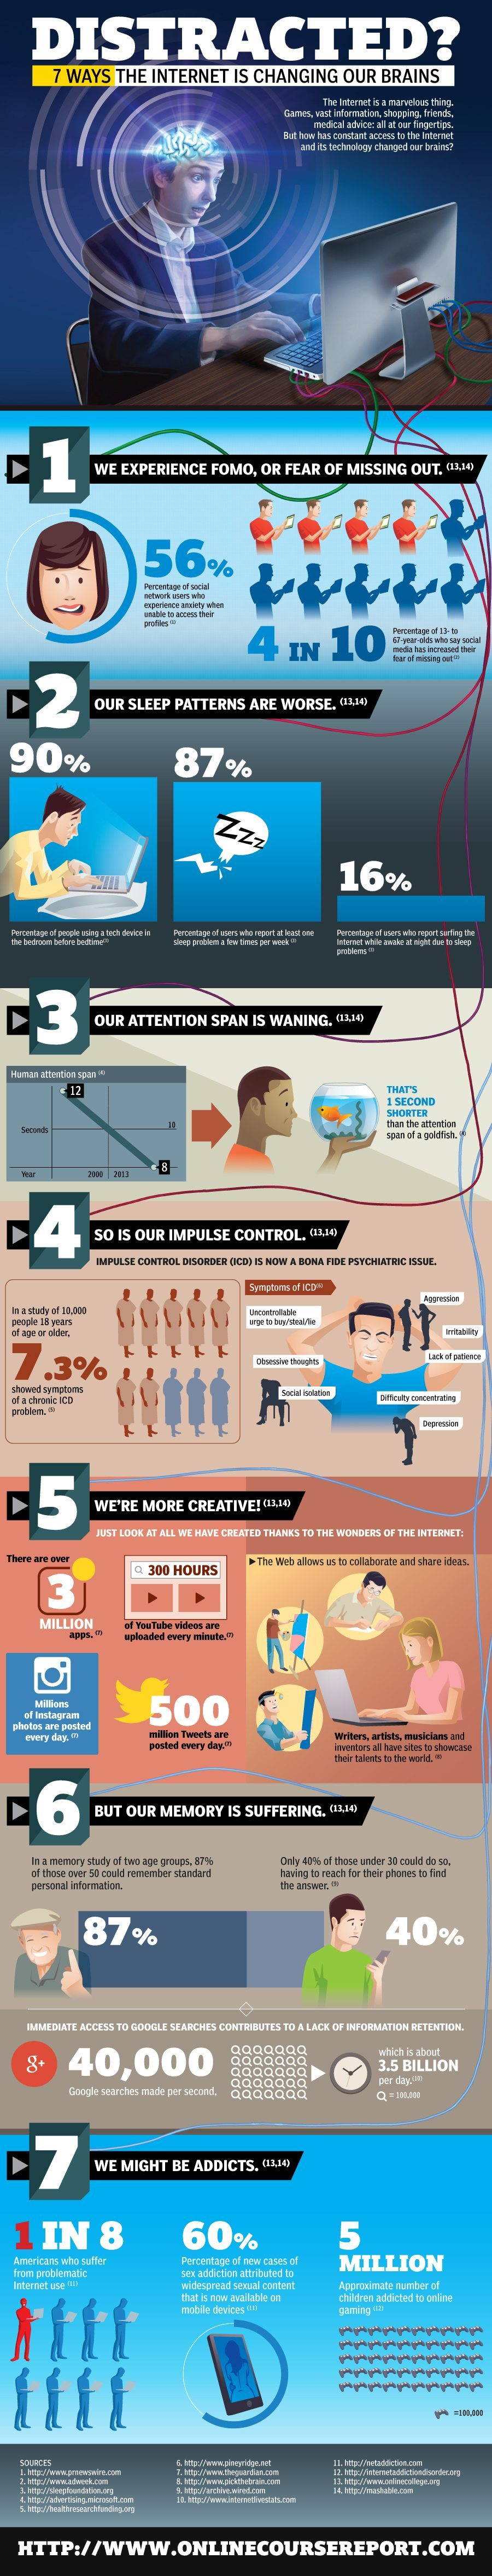 Distracted? Here is how the Internet is changing your brain (Infographic)